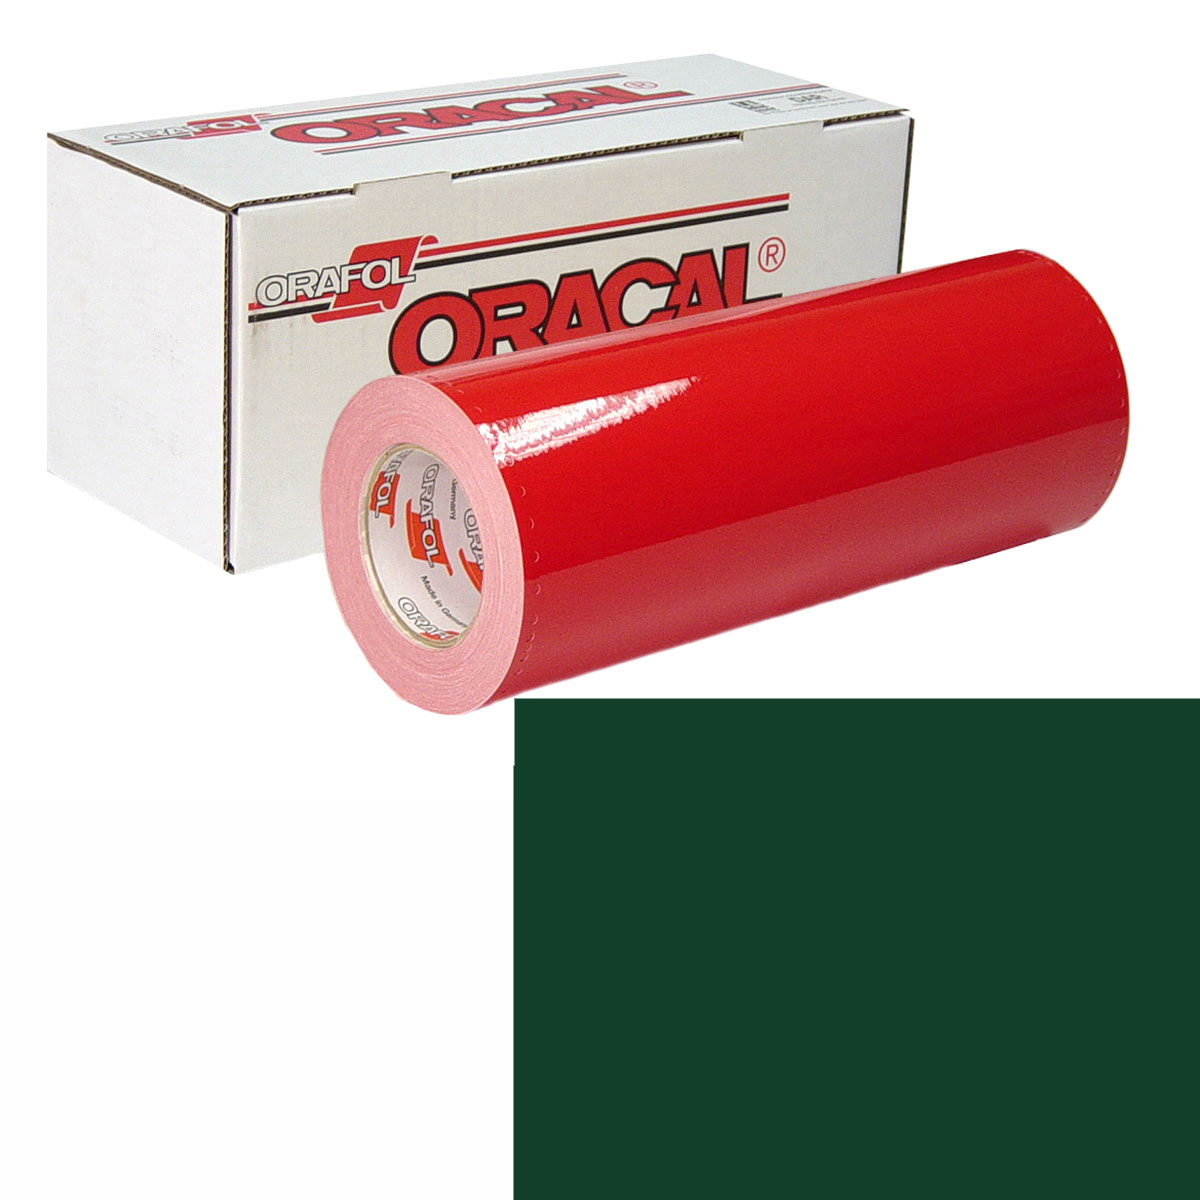 ORACAL 951 30in X 10yd 622 Fir Tree Green